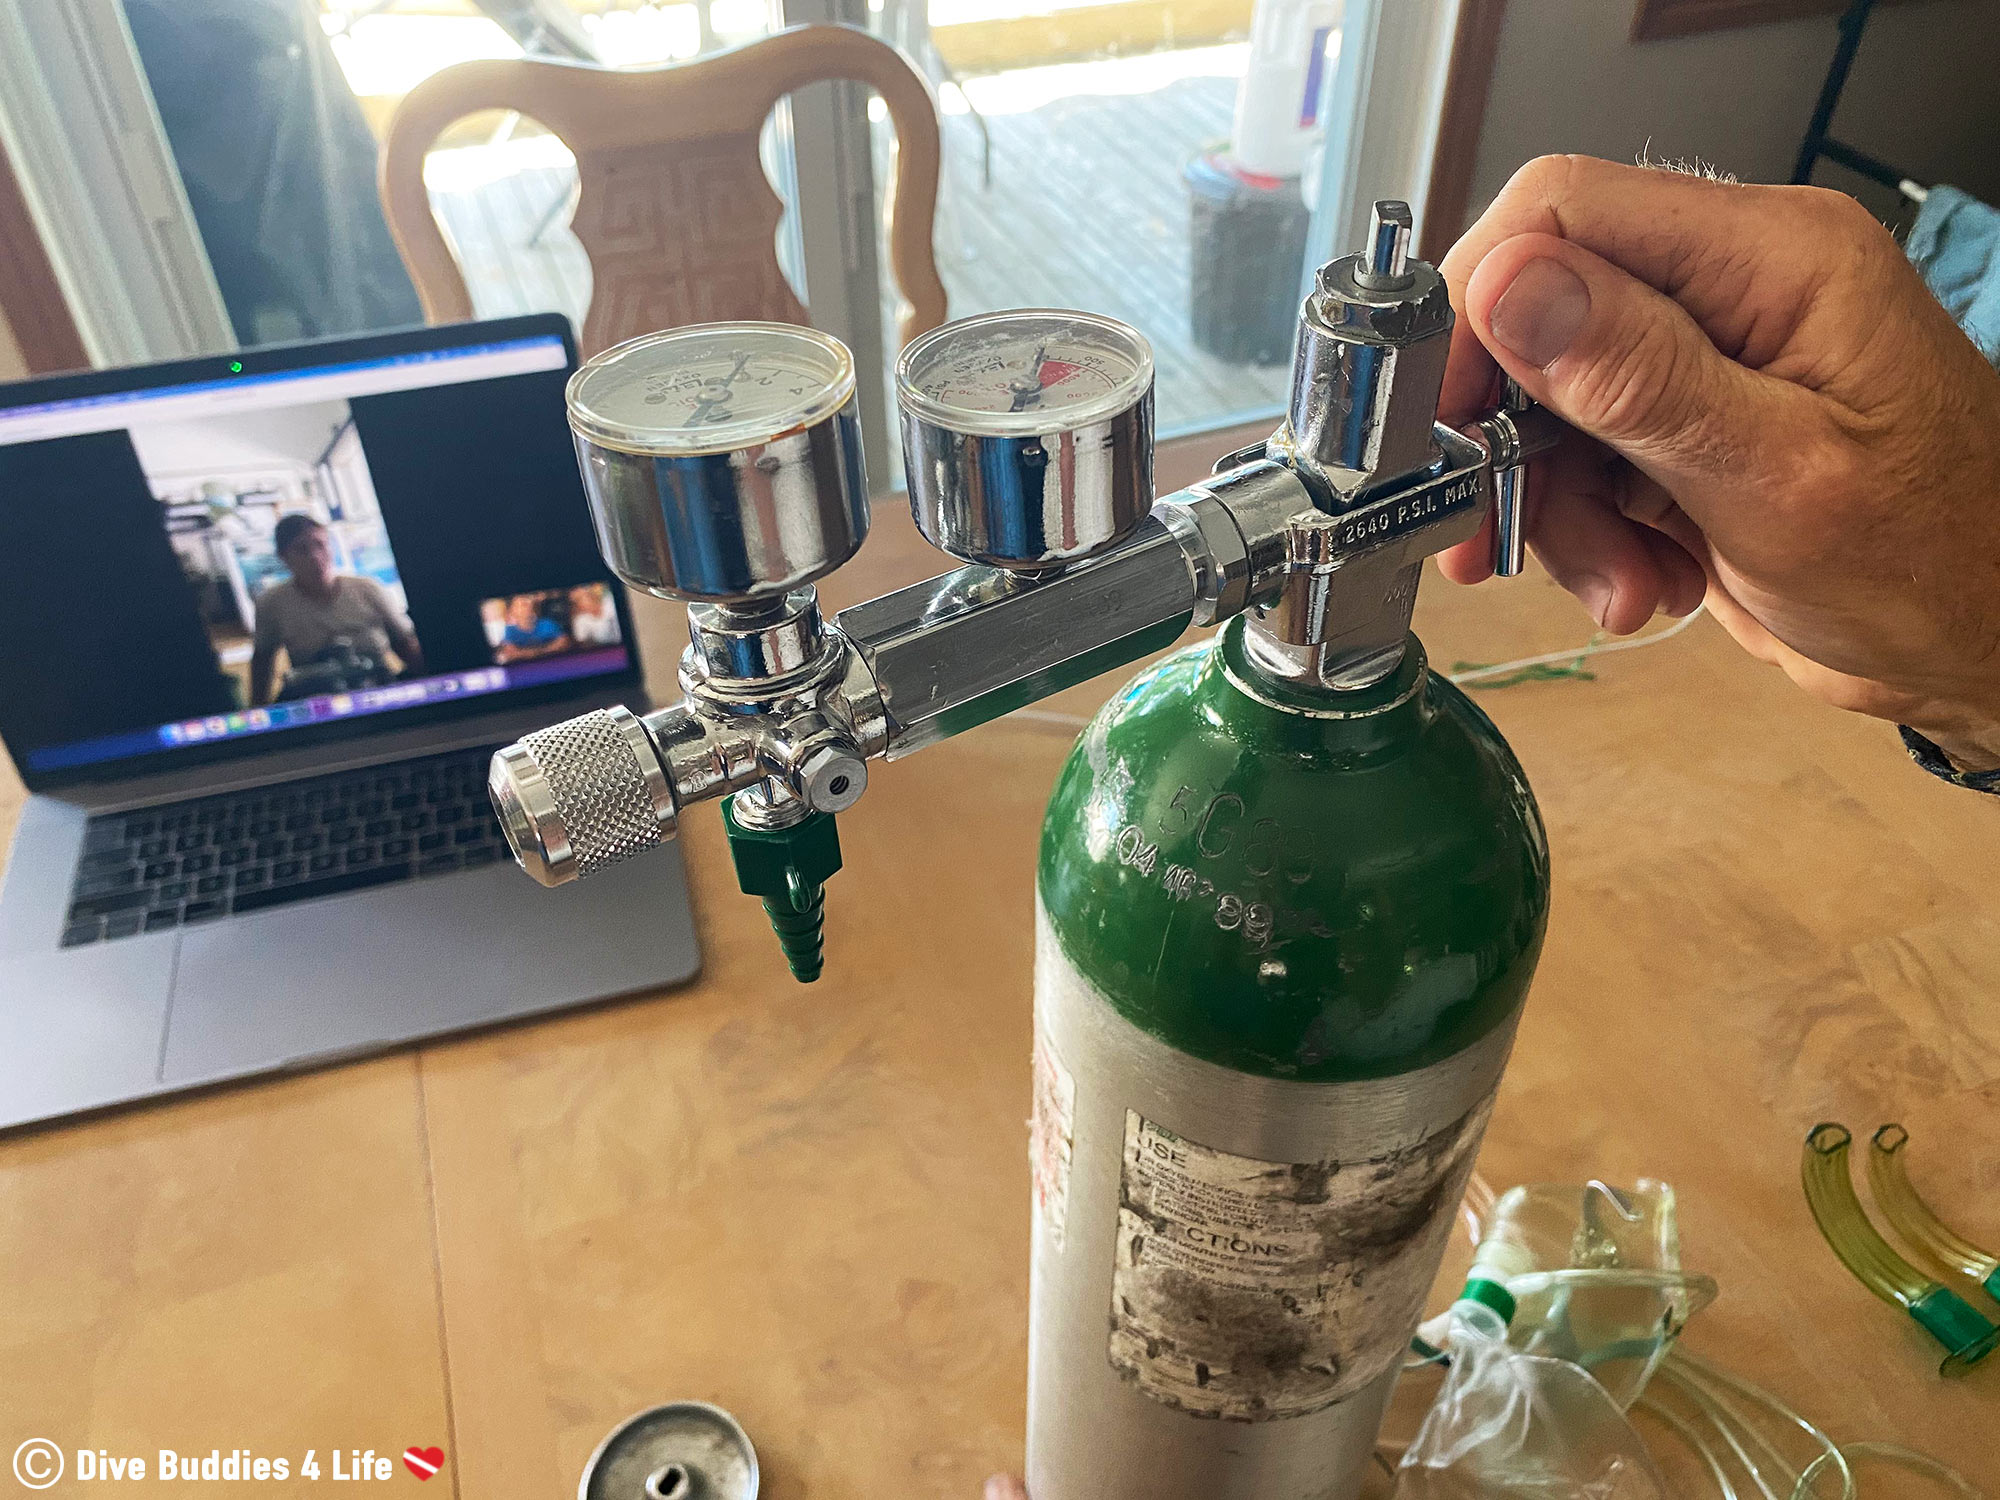 Securing The Valve On The Oxygen Cylinder For The Remote PADI Emergency Oxygen Provider Course